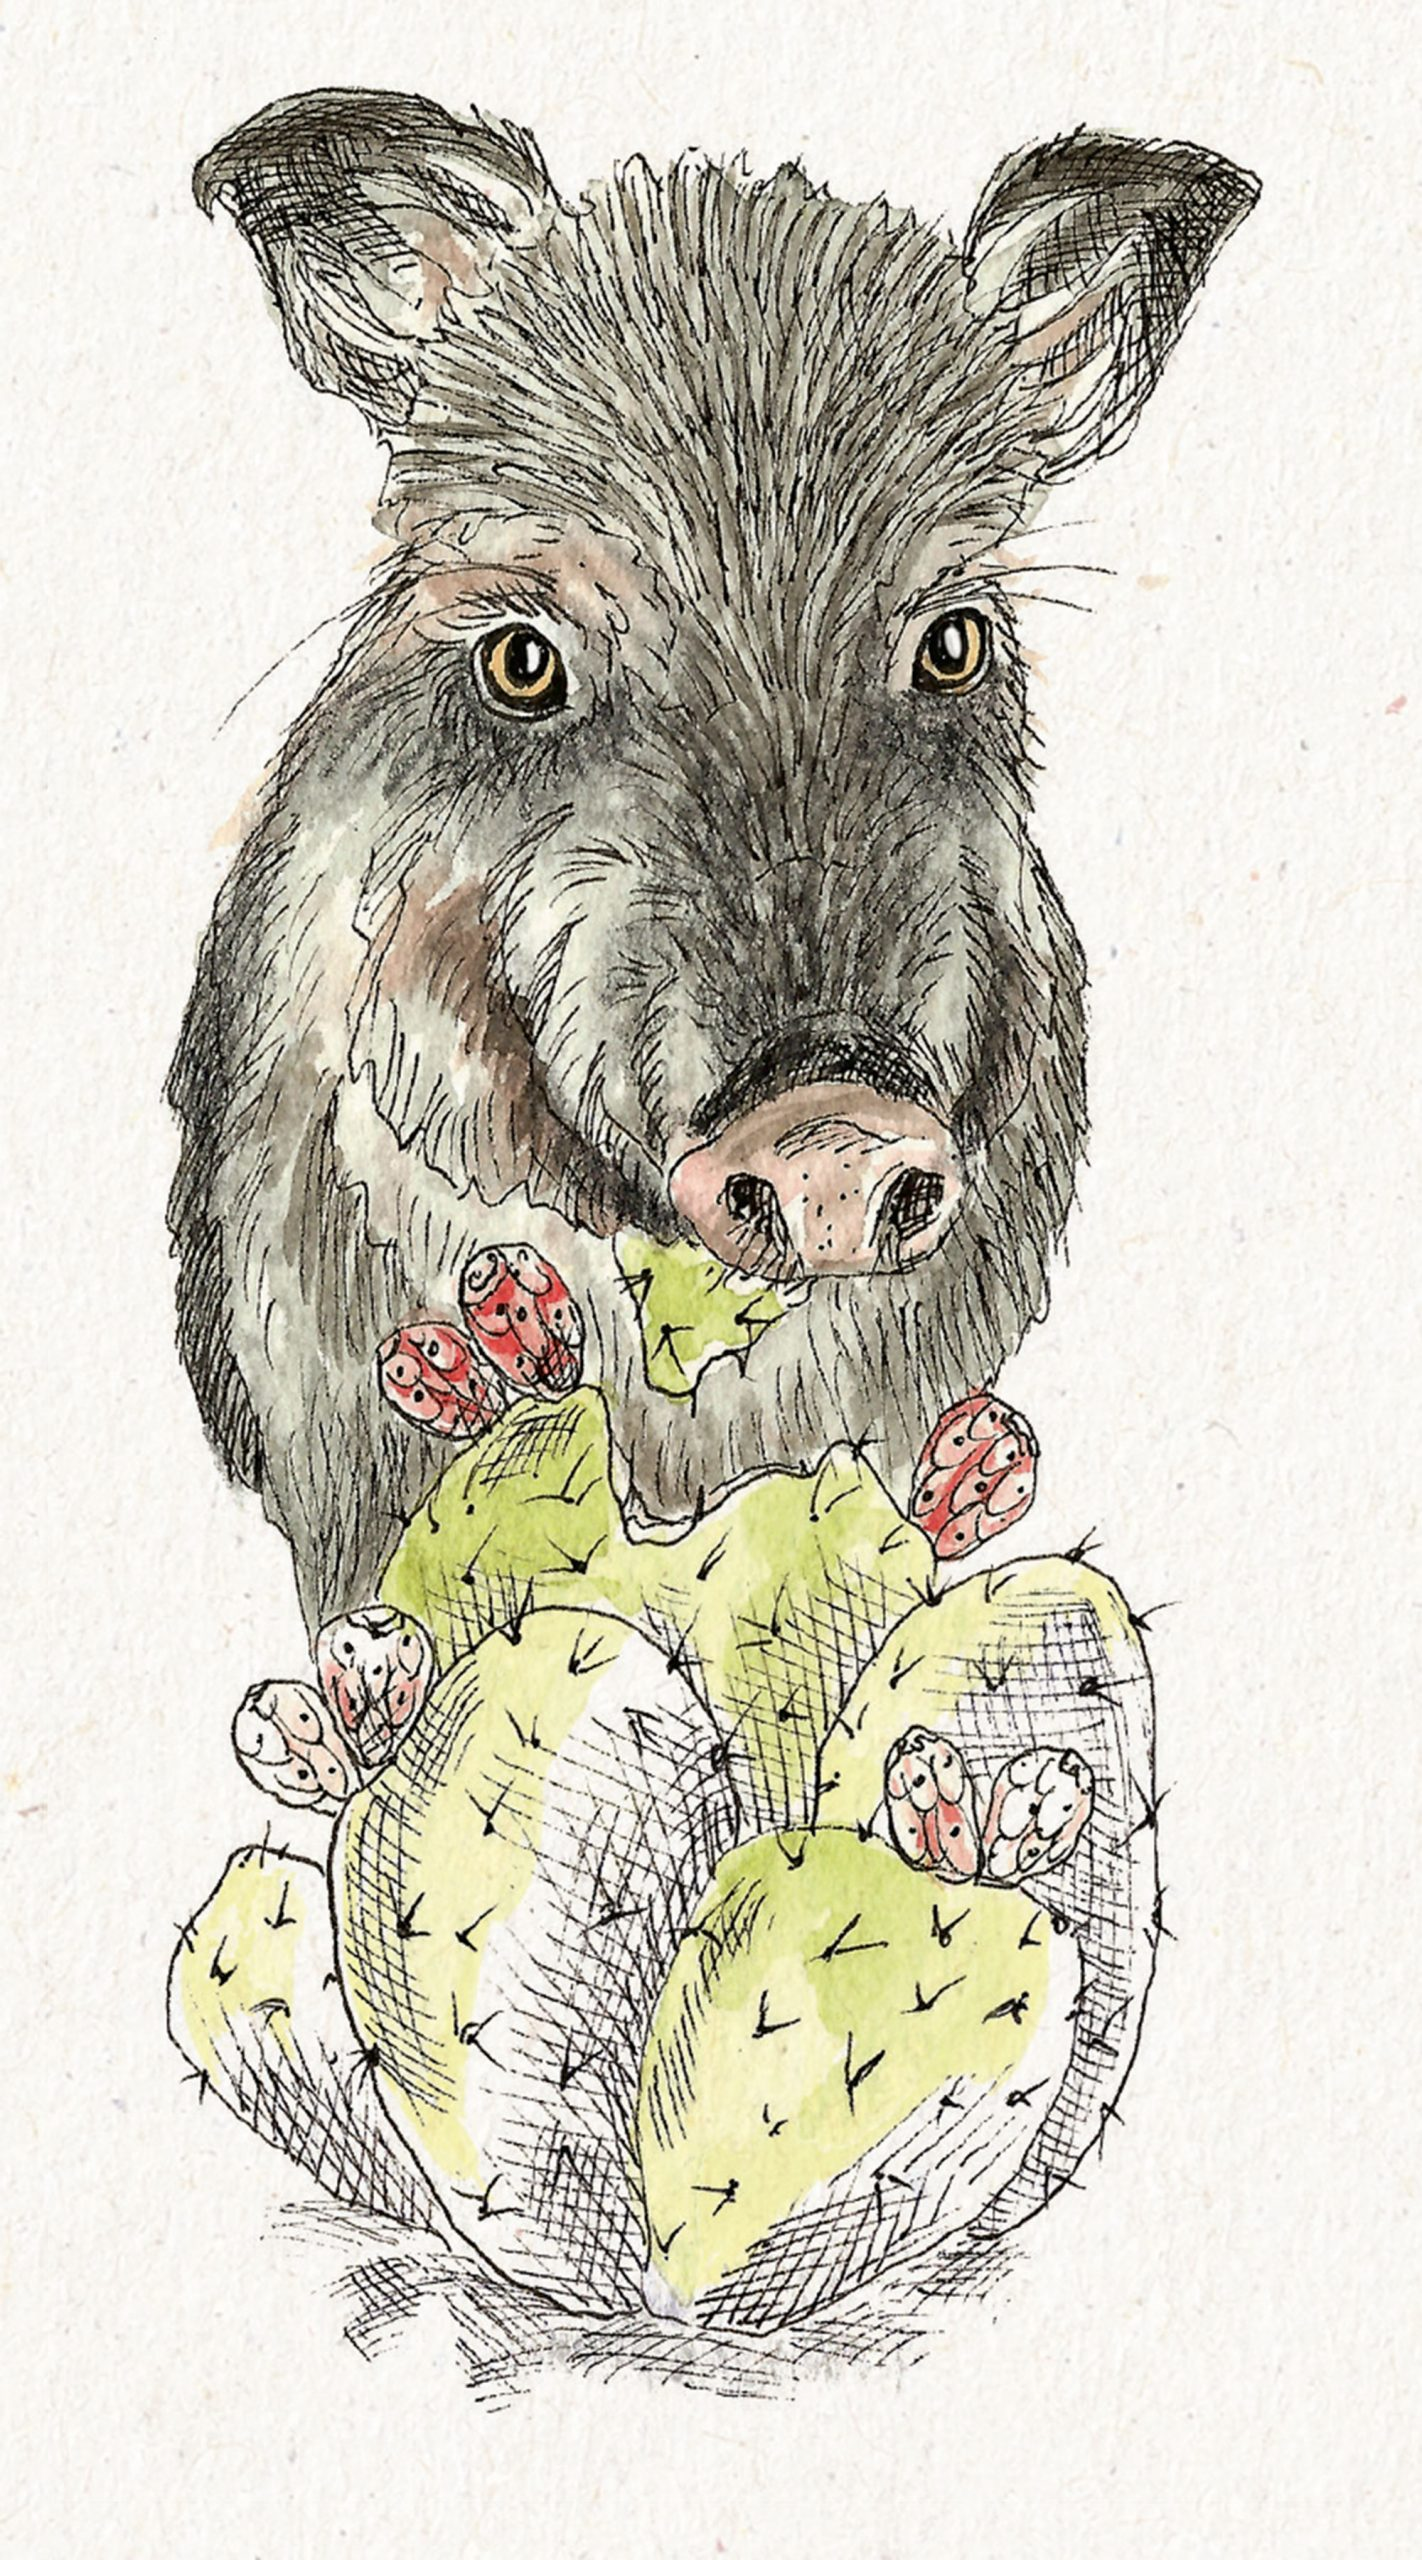 Illustrations by Nathalie Aall